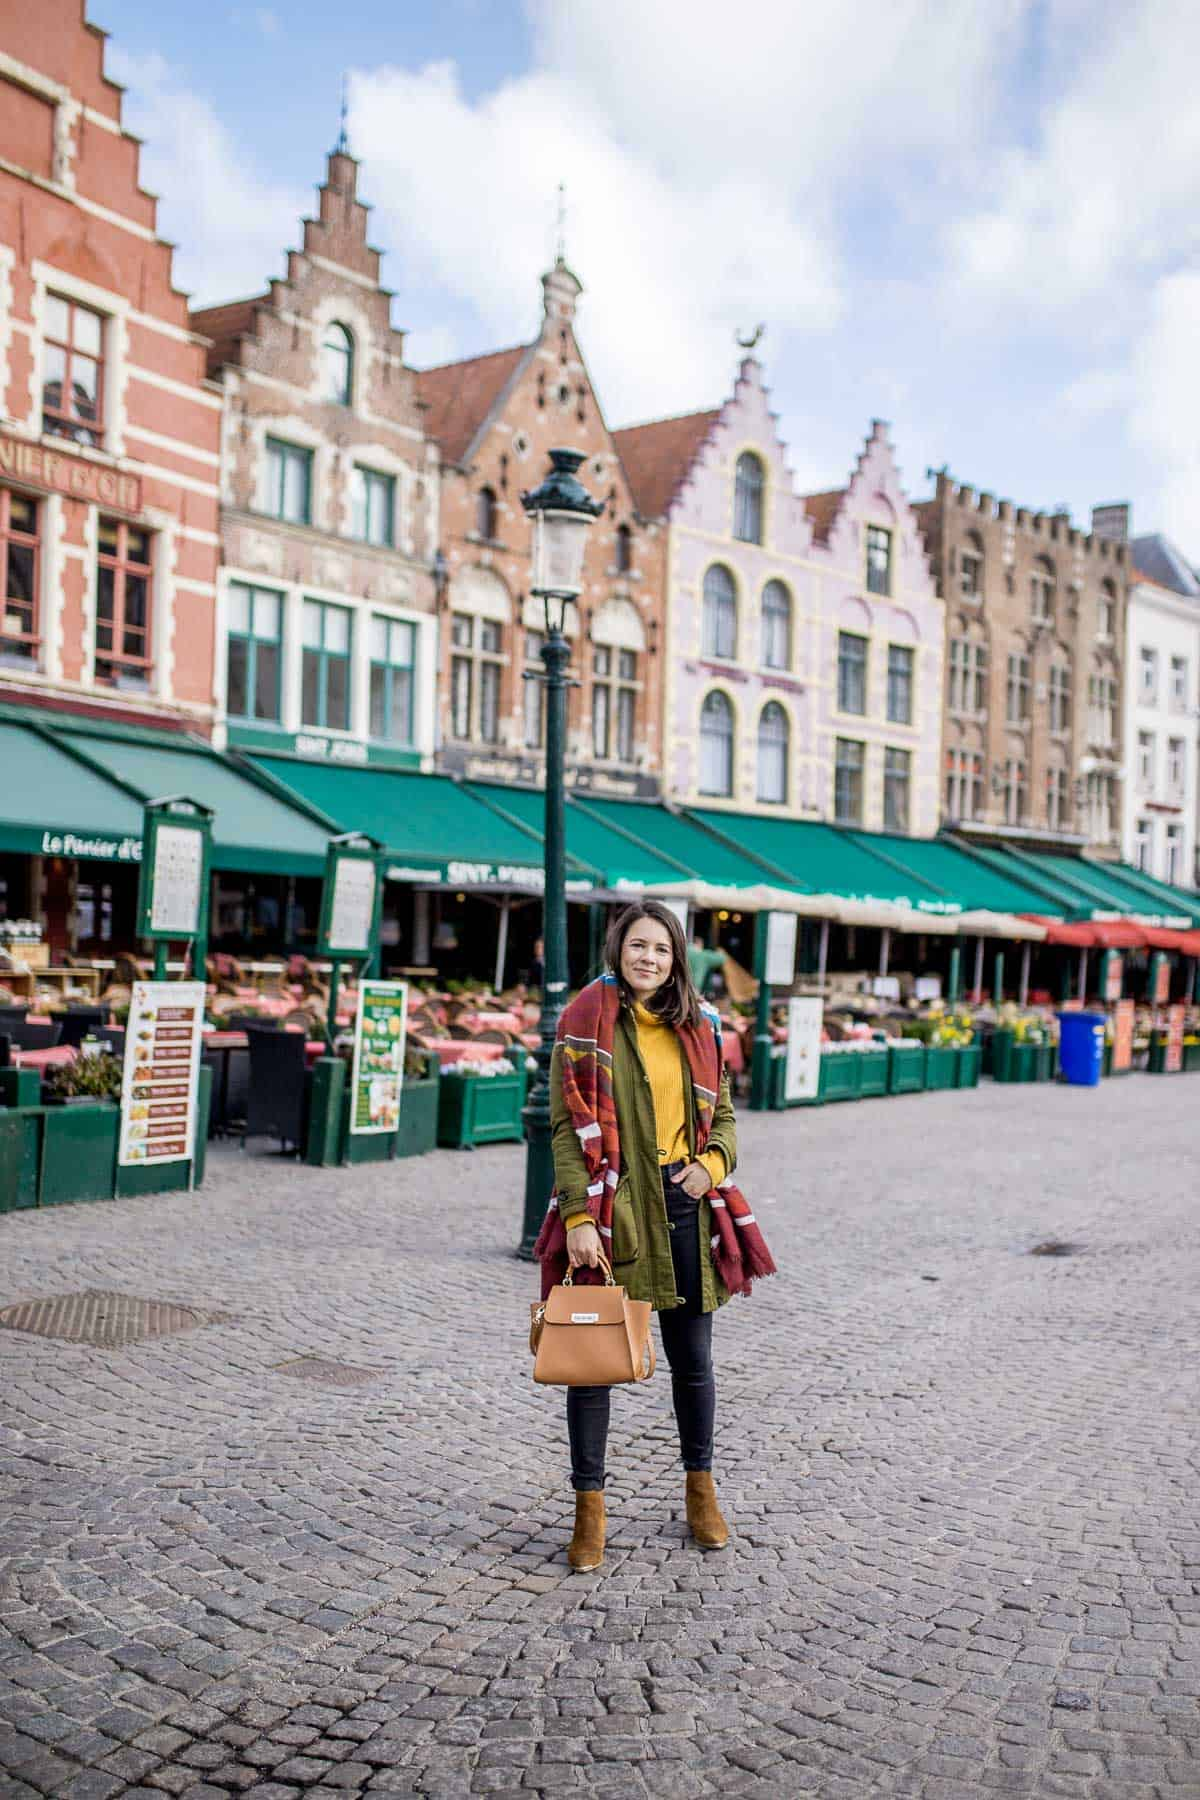 Jessica is at the Market Square of Bruges